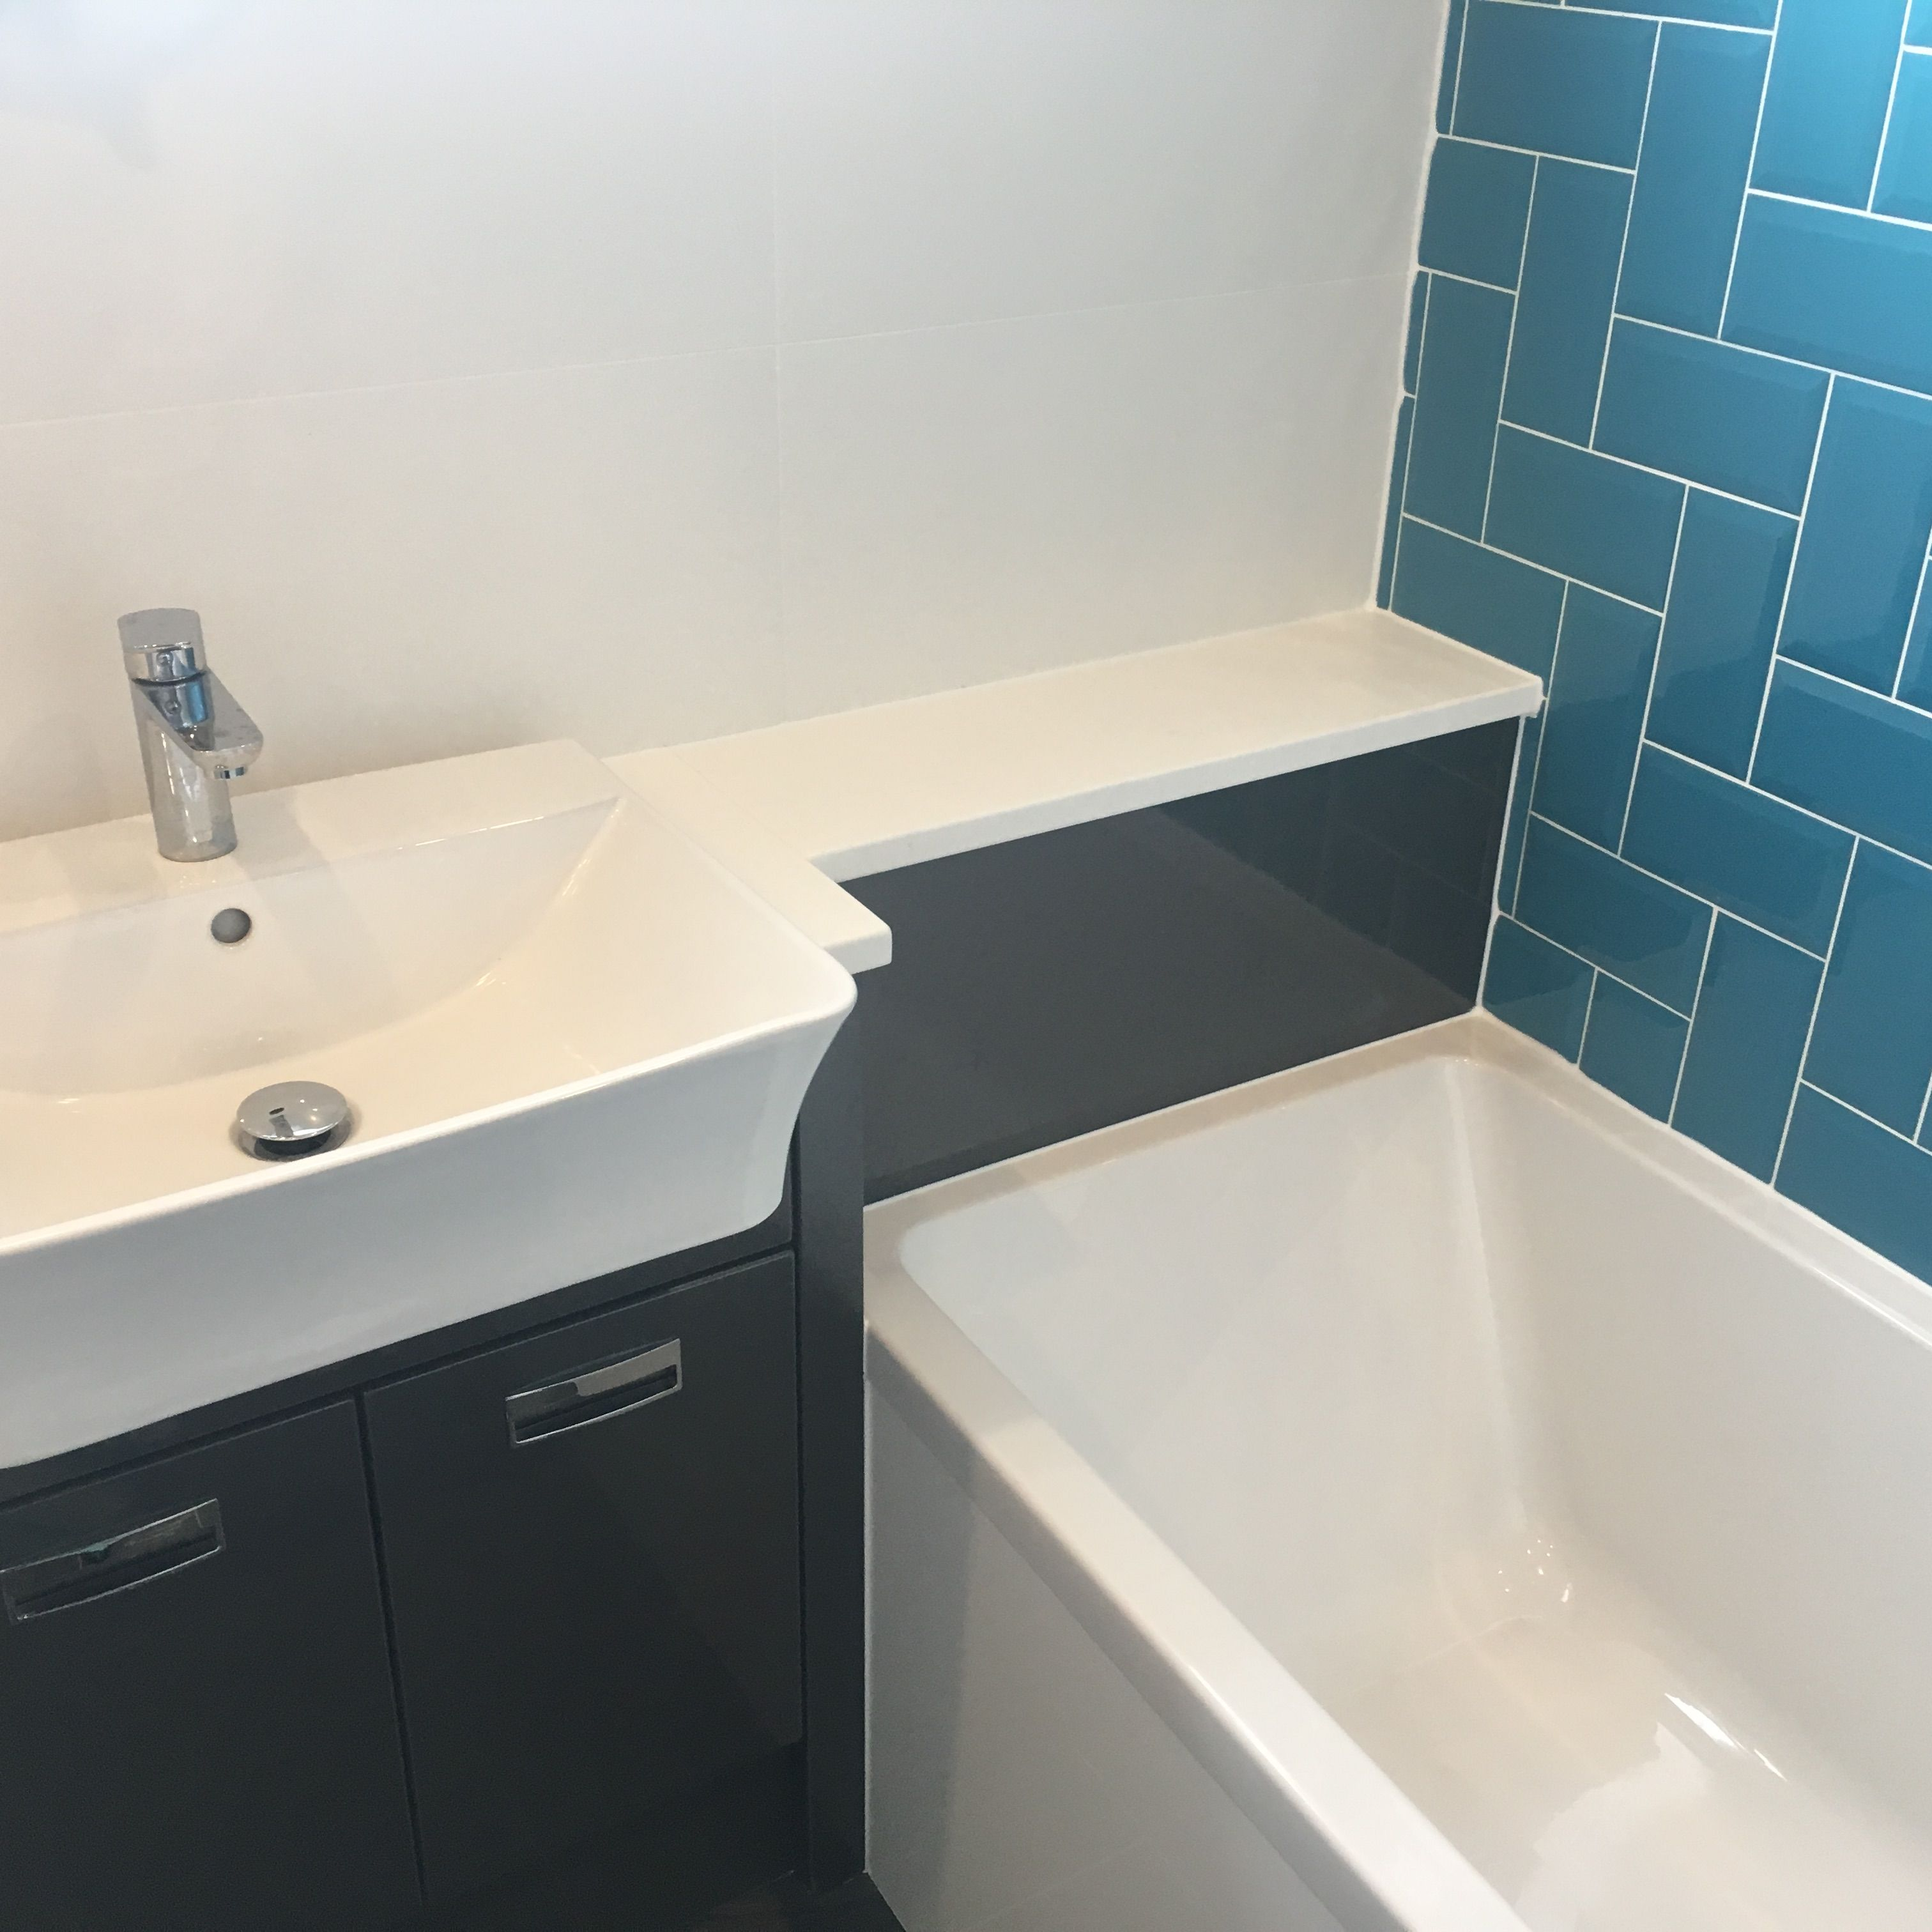 Teal Brick Tiles In Herringbone Pattern With Grey Gloss Basin Vanity Units Teal Bathroom Basin Vanity Unit Bathroom Design